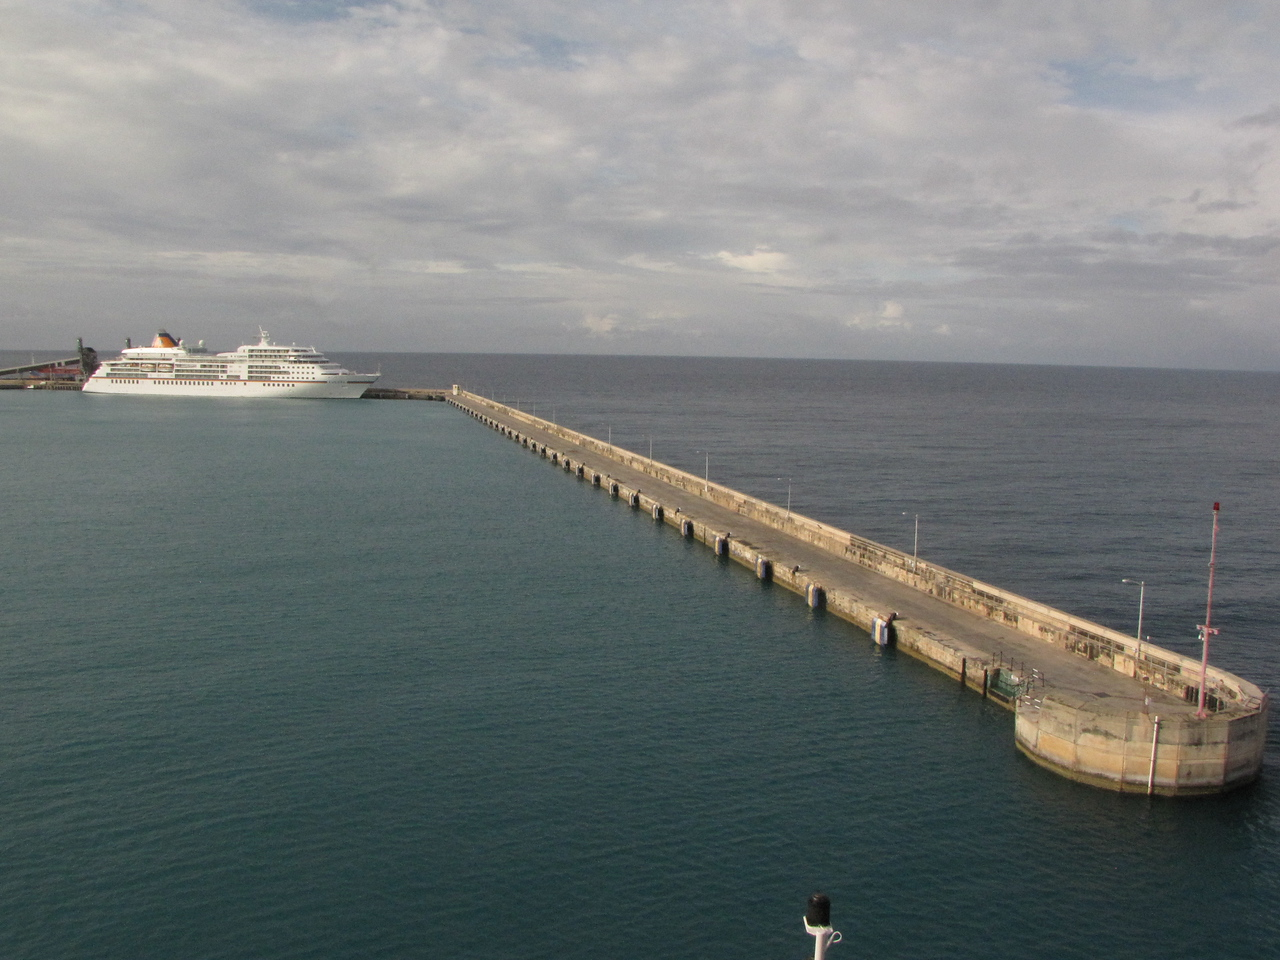 We arrive at Bridgetown, Barbados on Friday morning.